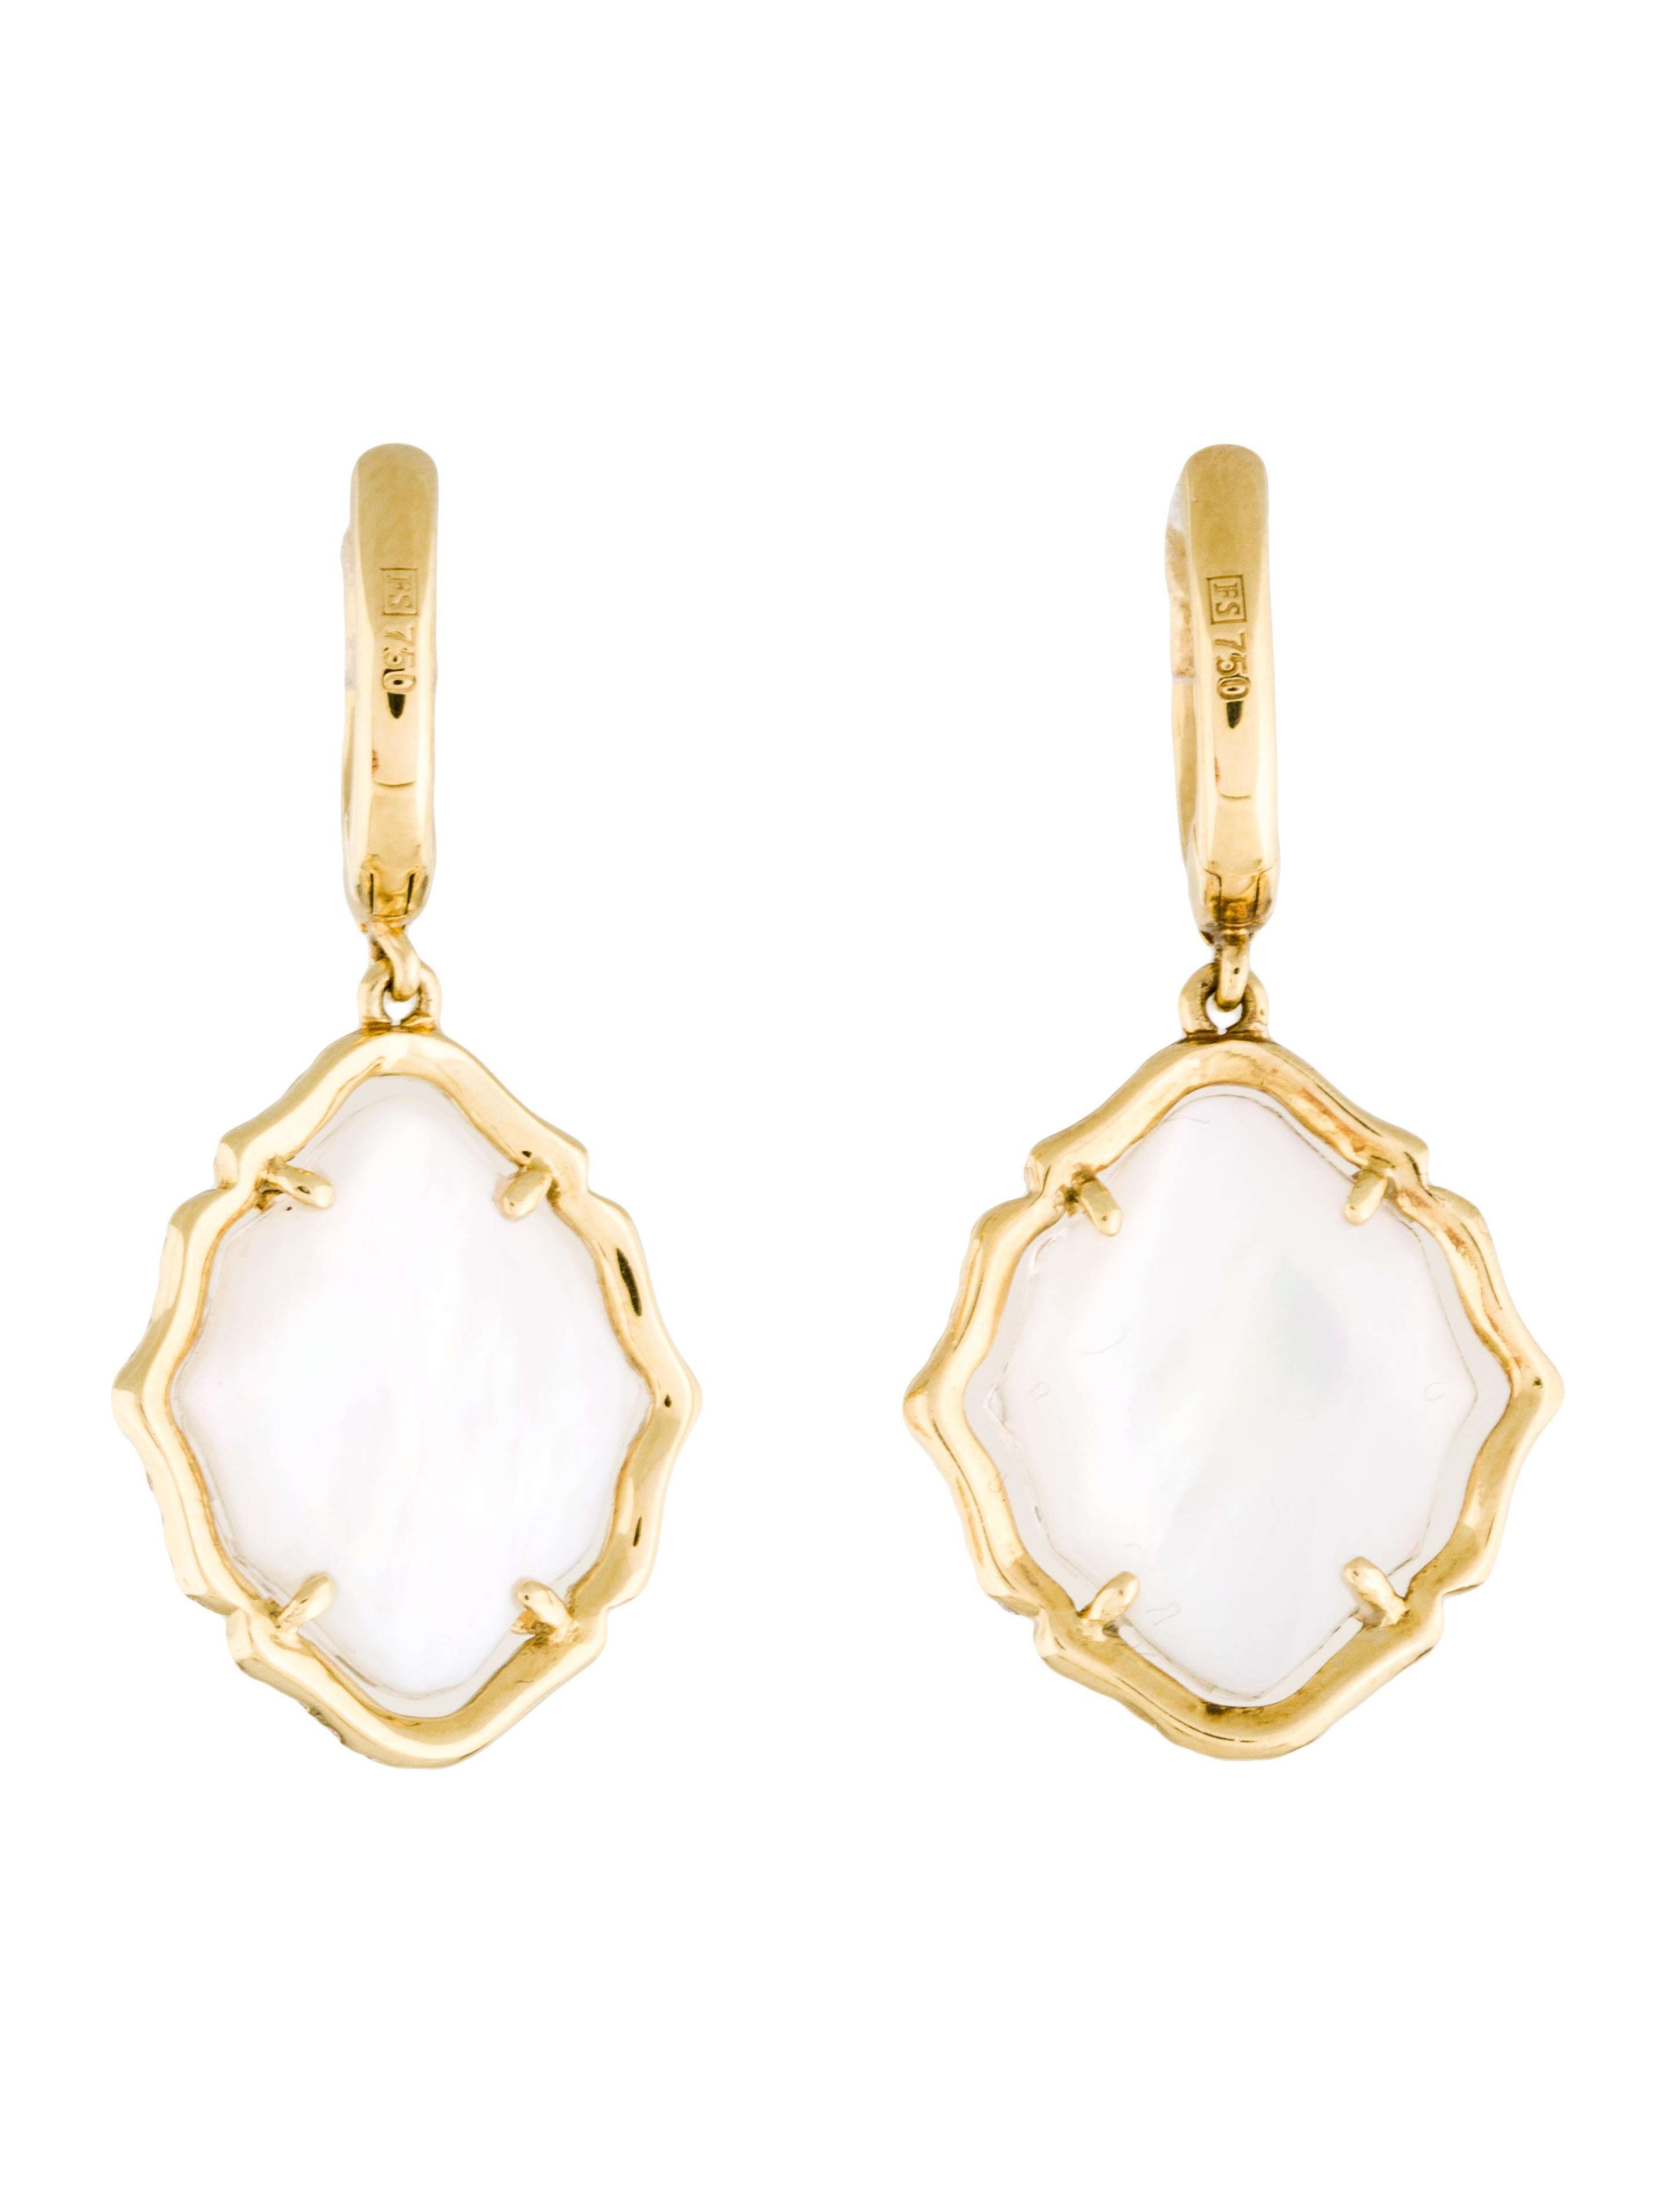 frederic sage 18k diamond mother of pearl drop earrings. Black Bedroom Furniture Sets. Home Design Ideas